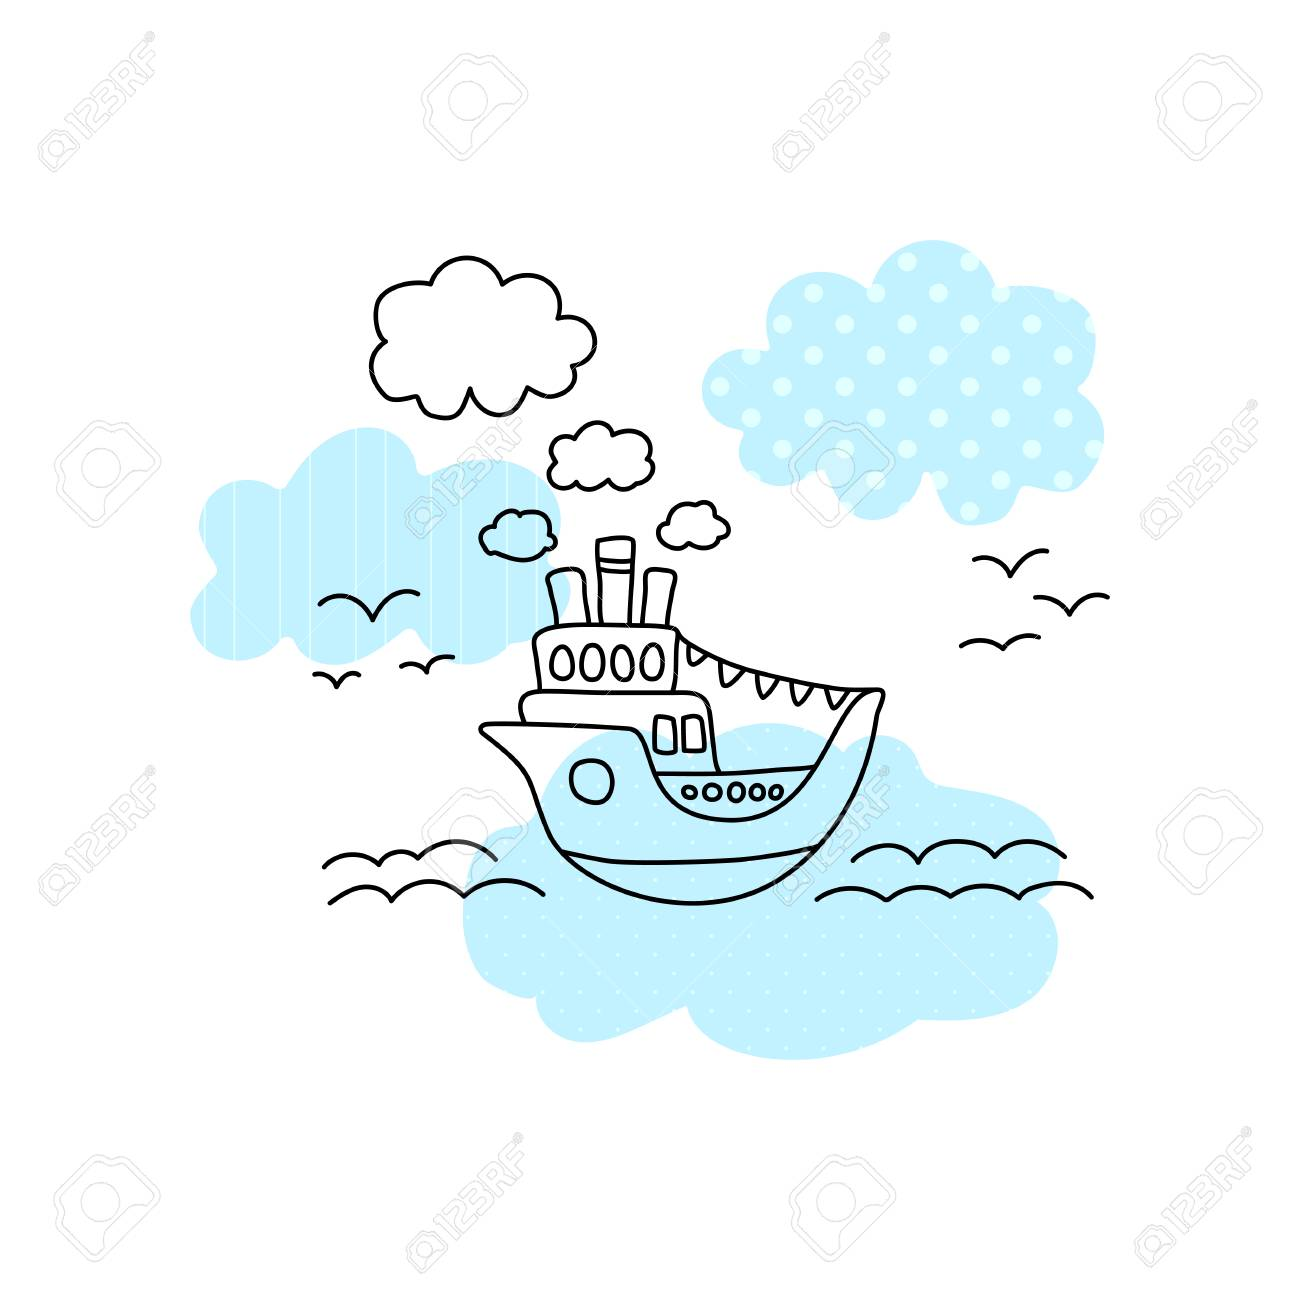 Ship in sea vector illustration with black line on white background. Cute ship in sea print for boy. Cruise liner with blue pattern patch. Ocean liner line art. Seascape with ferry, sea waves, seagull - 108532286